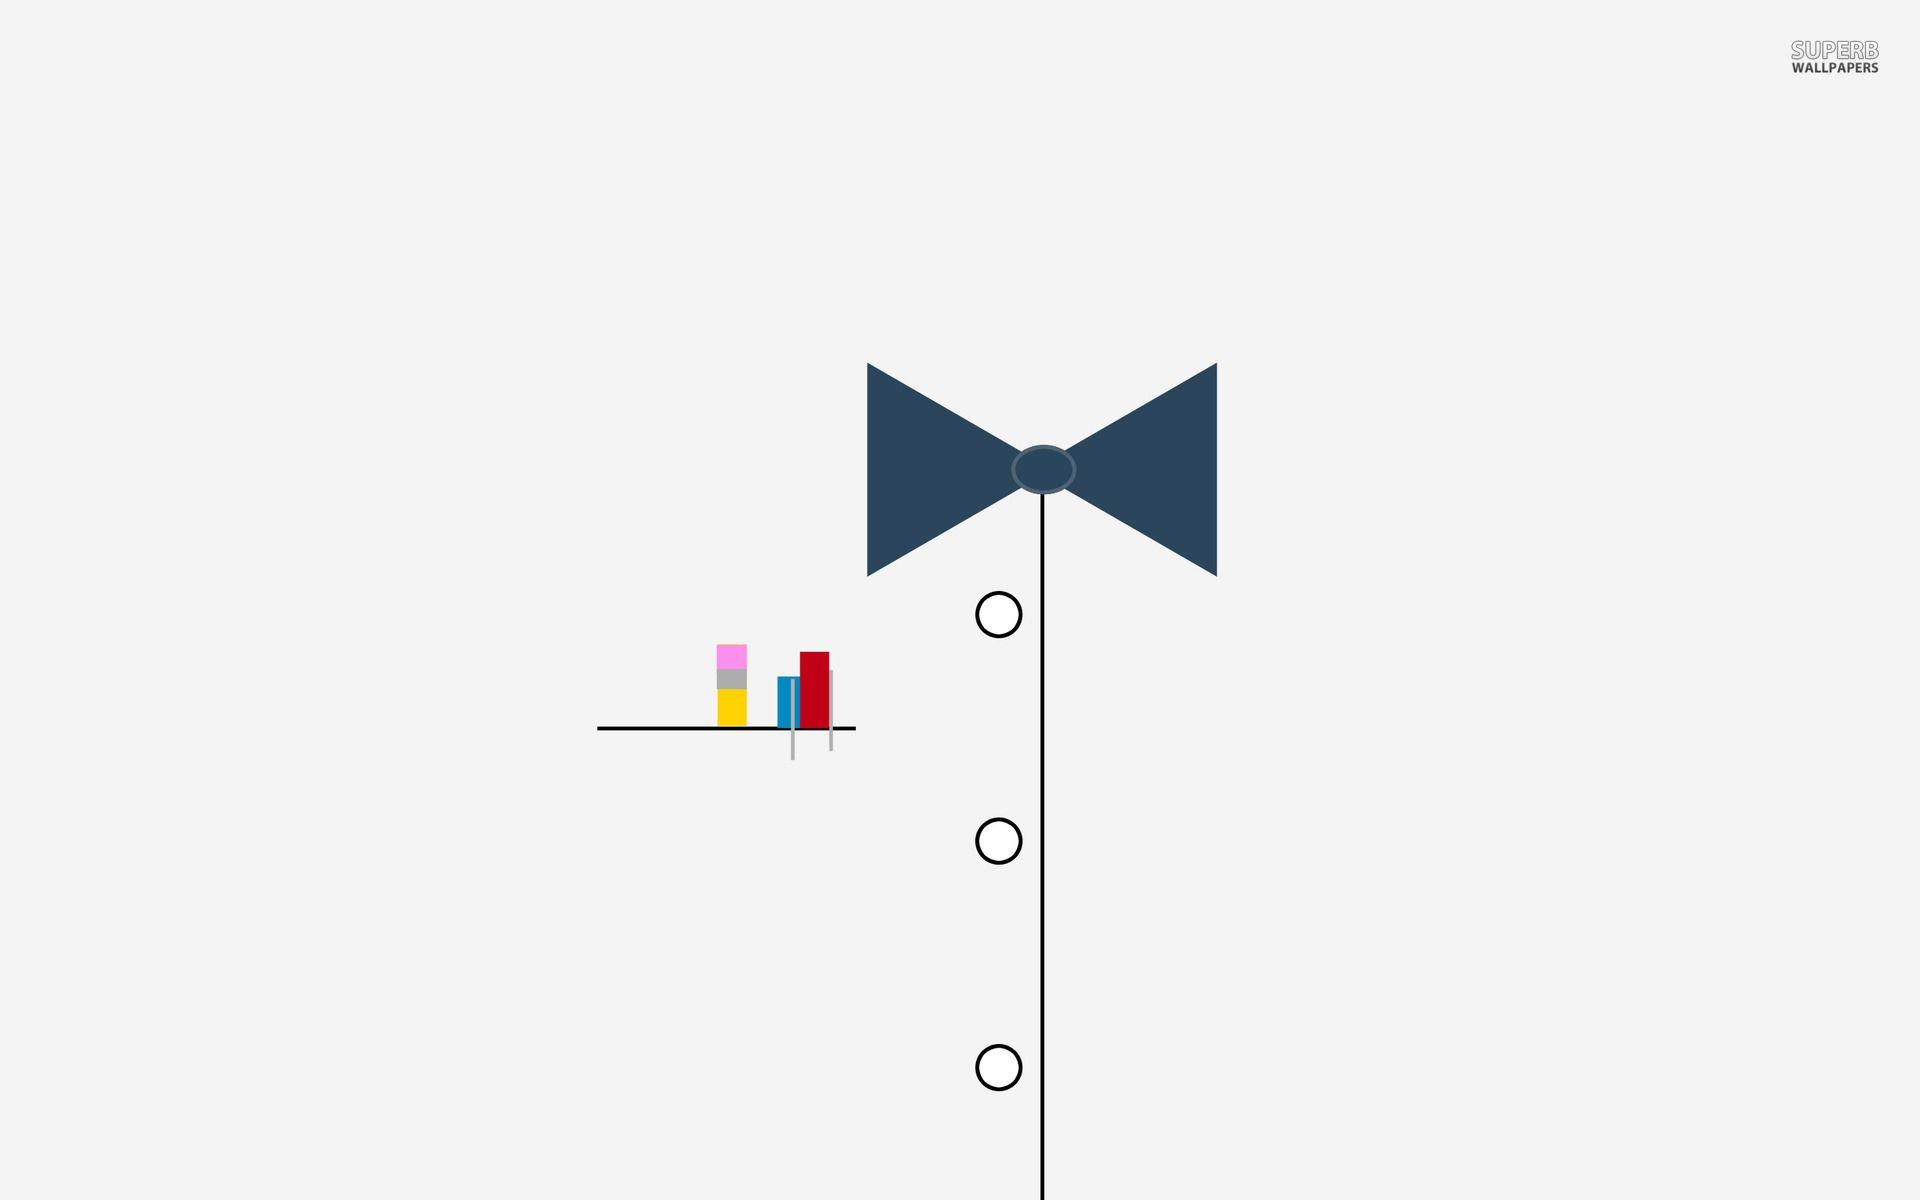 Wallpapers For Bow Tie Wallpaper